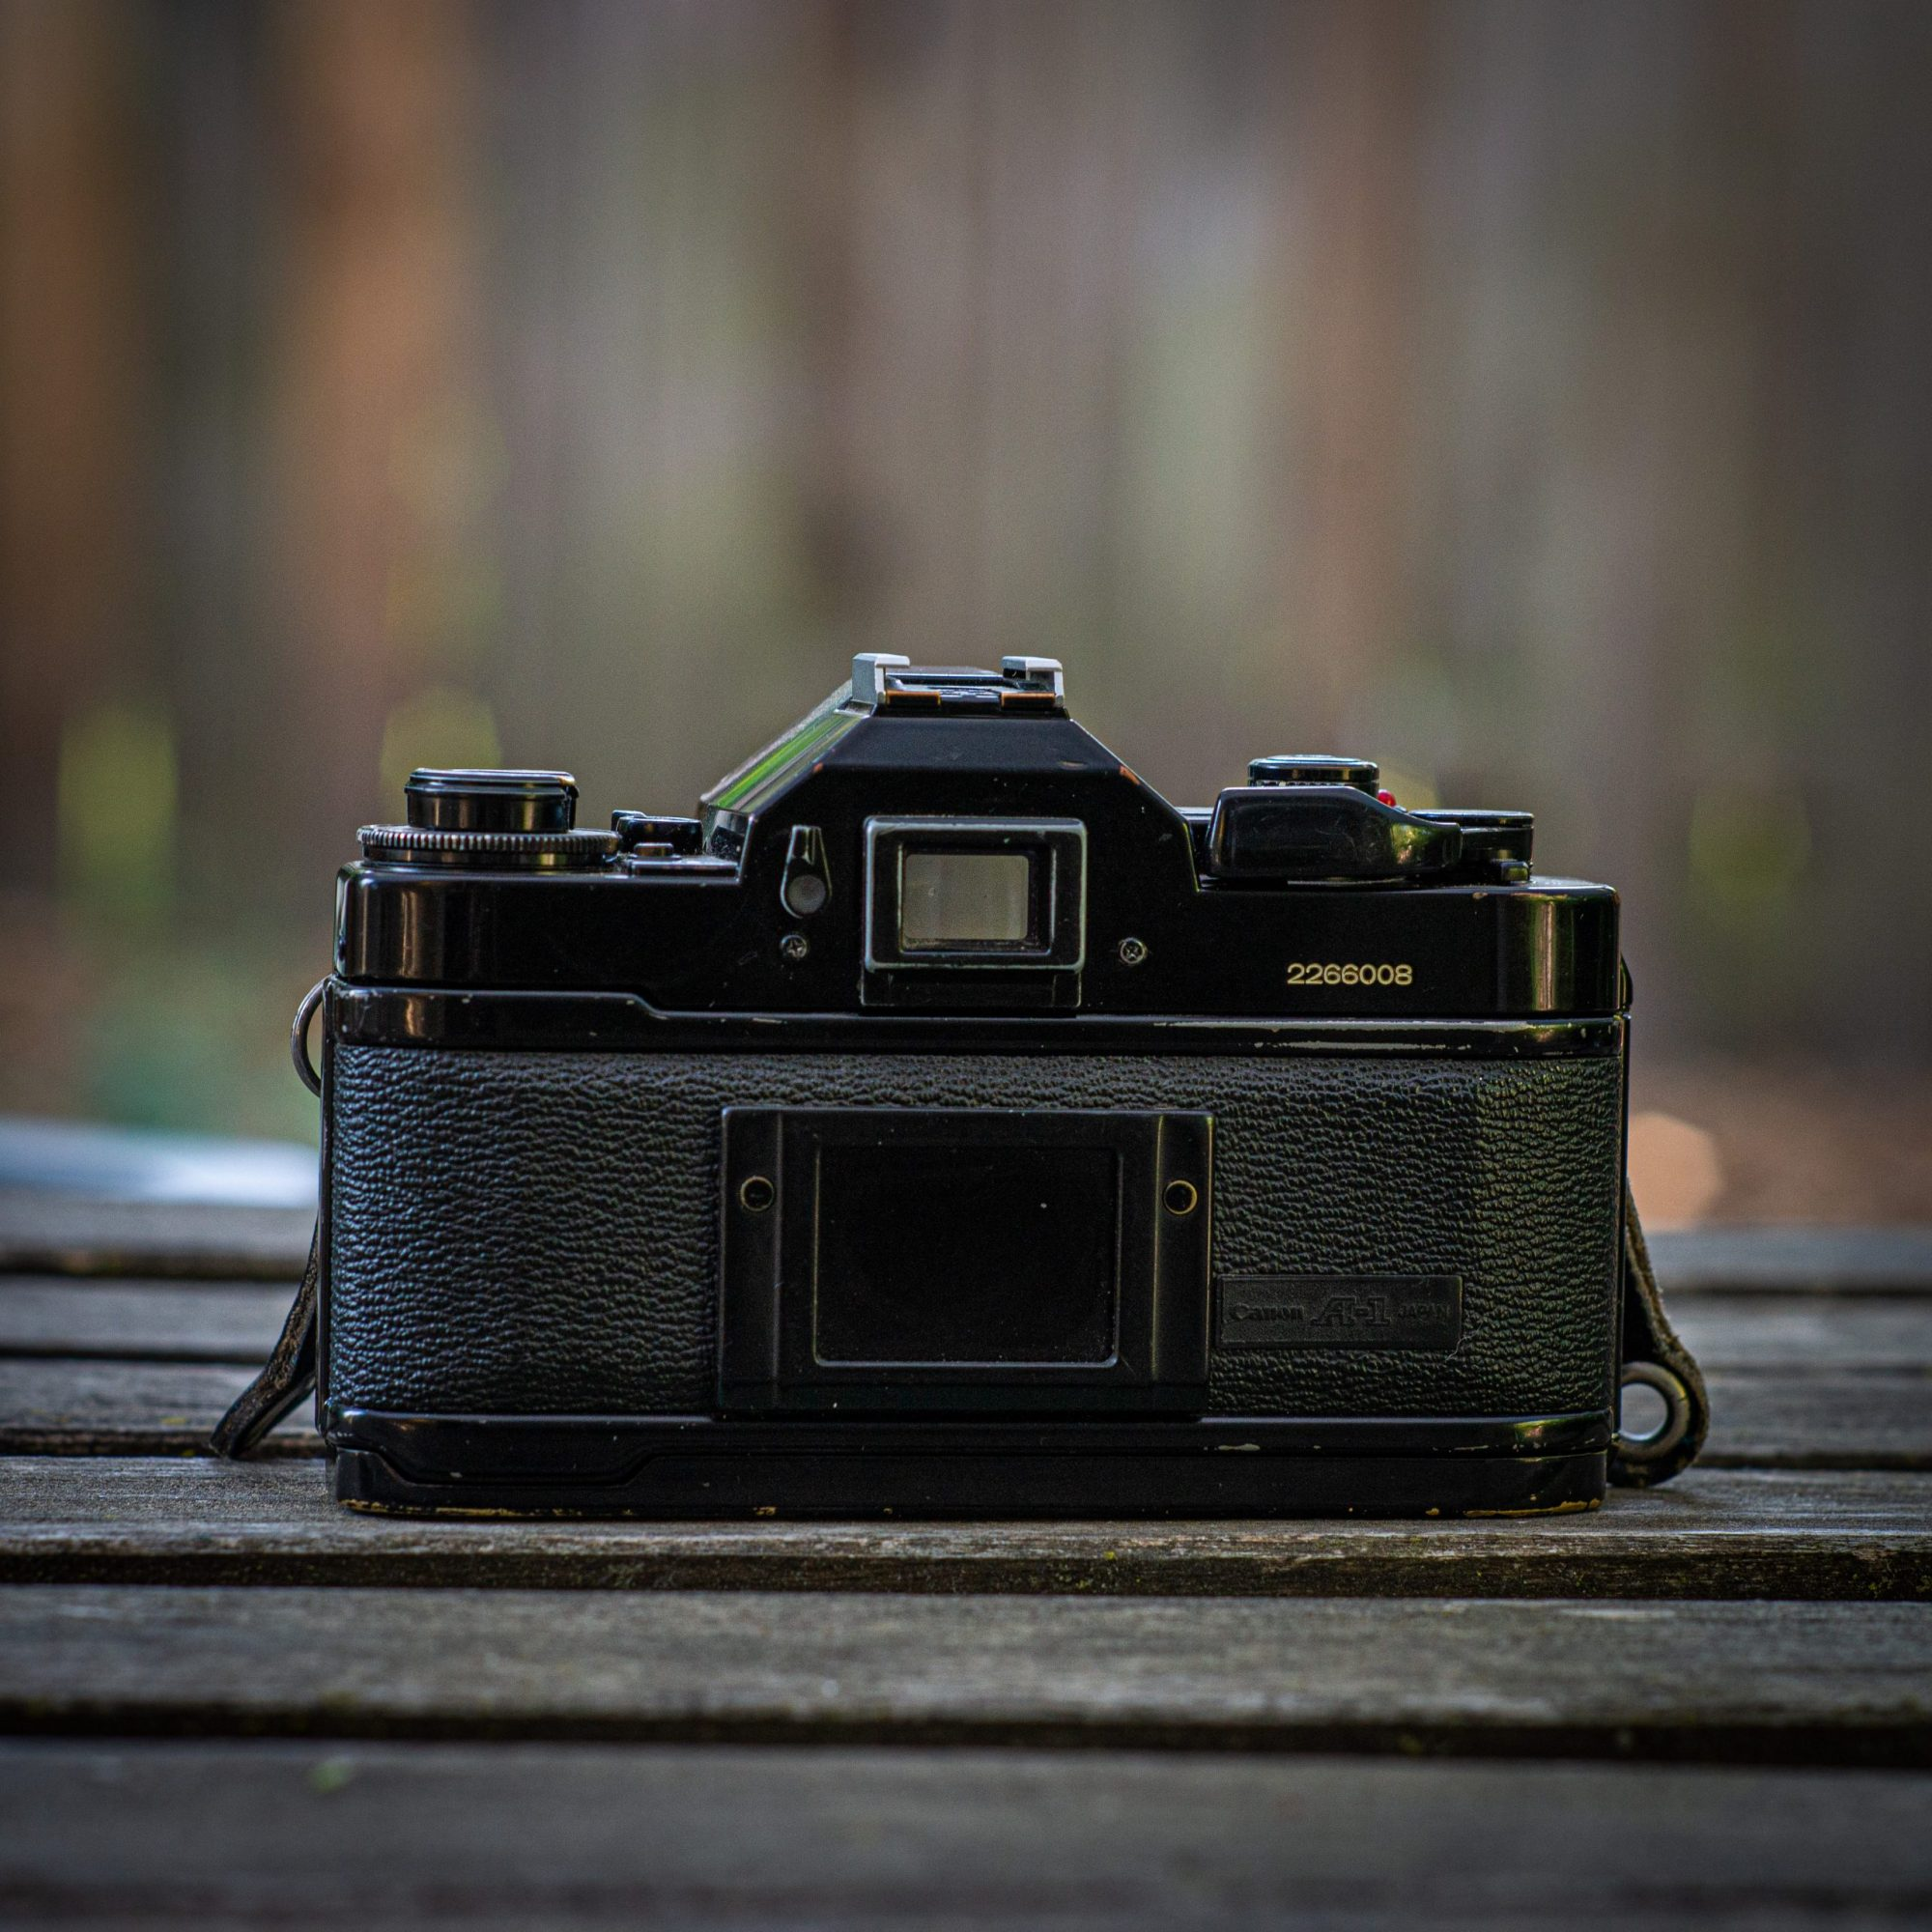 Back of Canon A-1